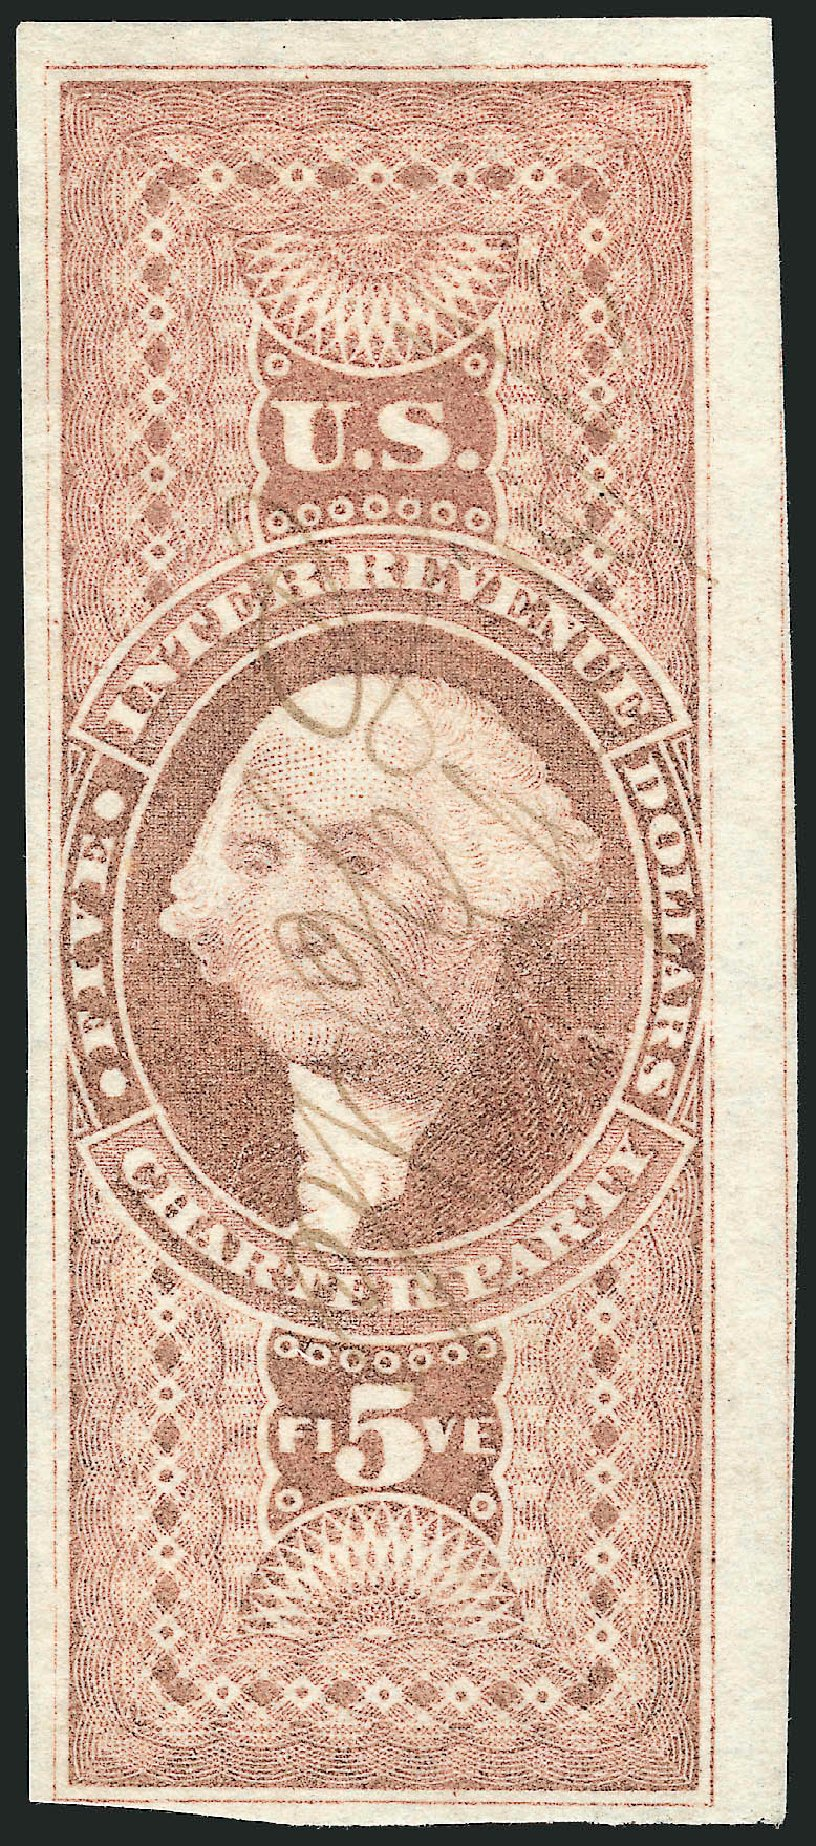 US Stamps Value Scott Catalog # R88: 1862 US$5.00 Revenue Charter Party. Robert Siegel Auction Galleries, Oct 2012, Sale 1031, Lot 1014